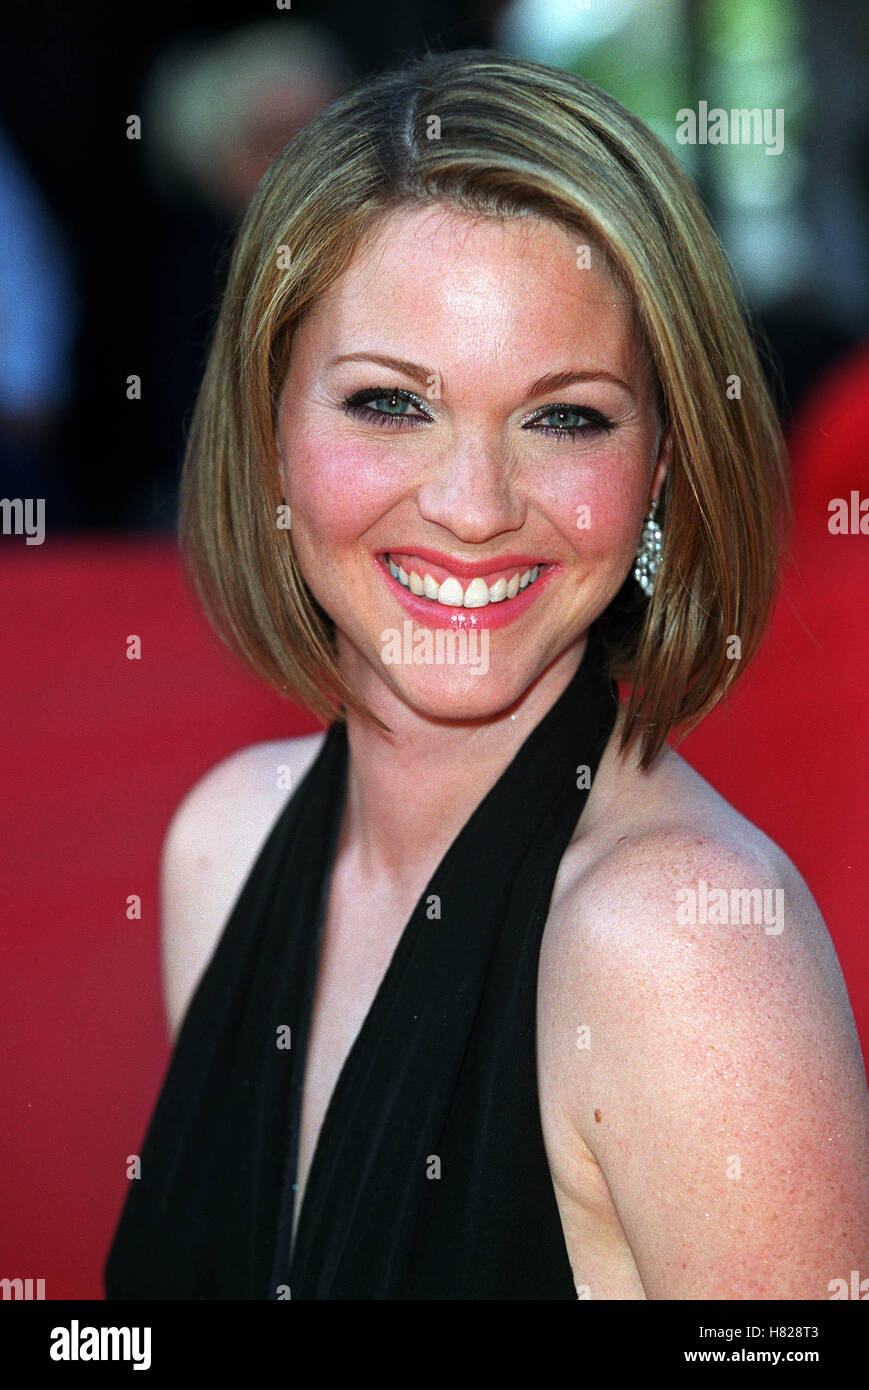 Kelly Williams Photography: KELLI WILLIAMS LOS ANGELES USA 23 March 2000 Stock Photo